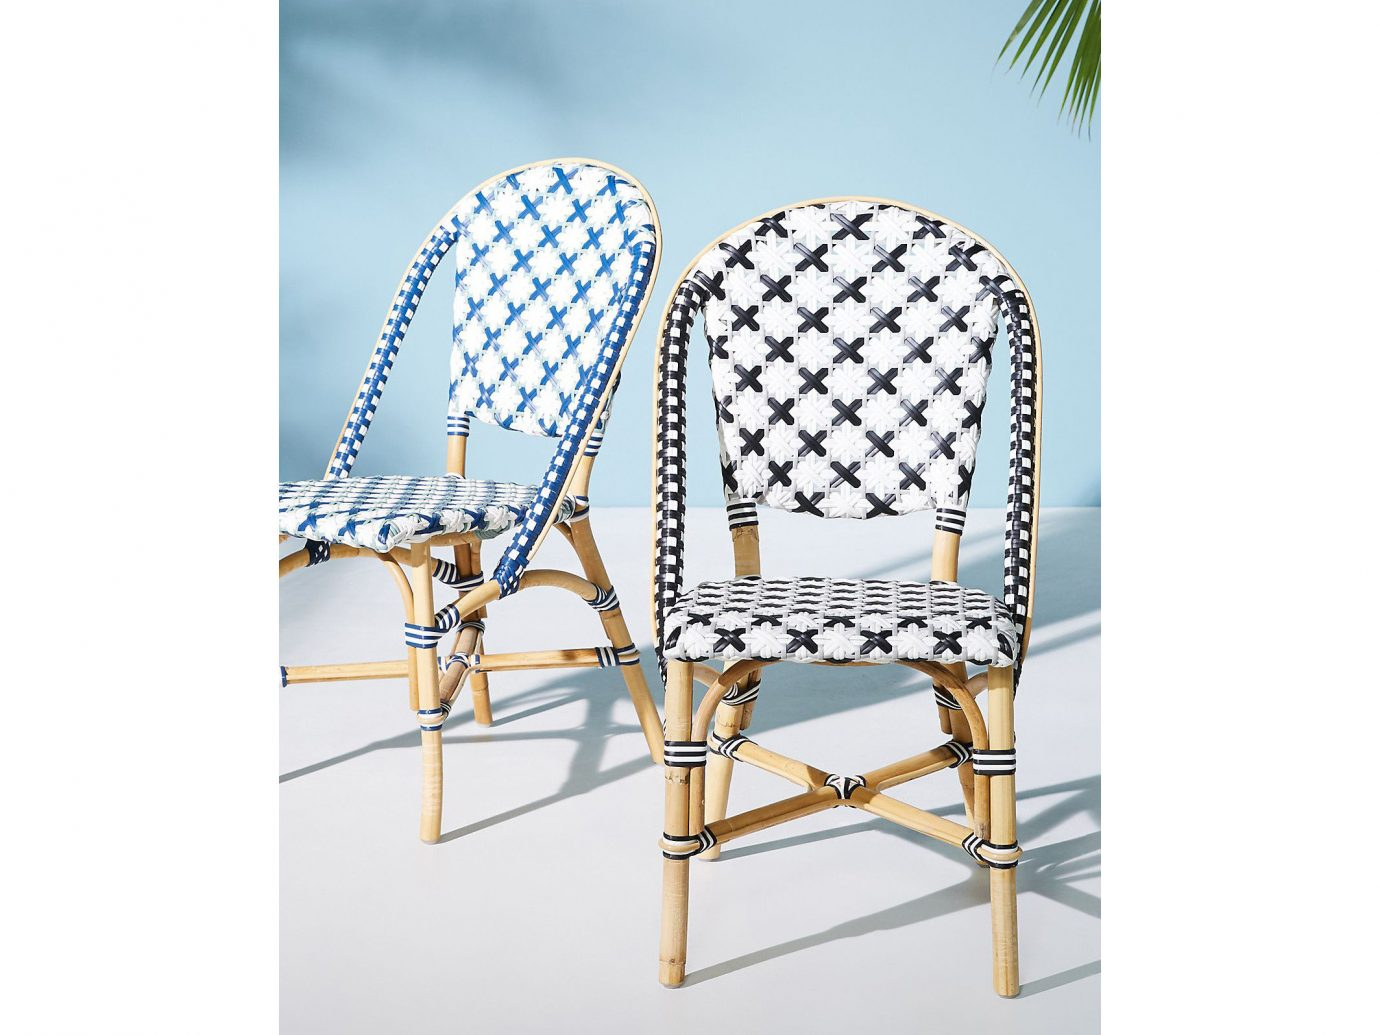 Style + Design Travel Shop furniture chair outdoor furniture product design product table